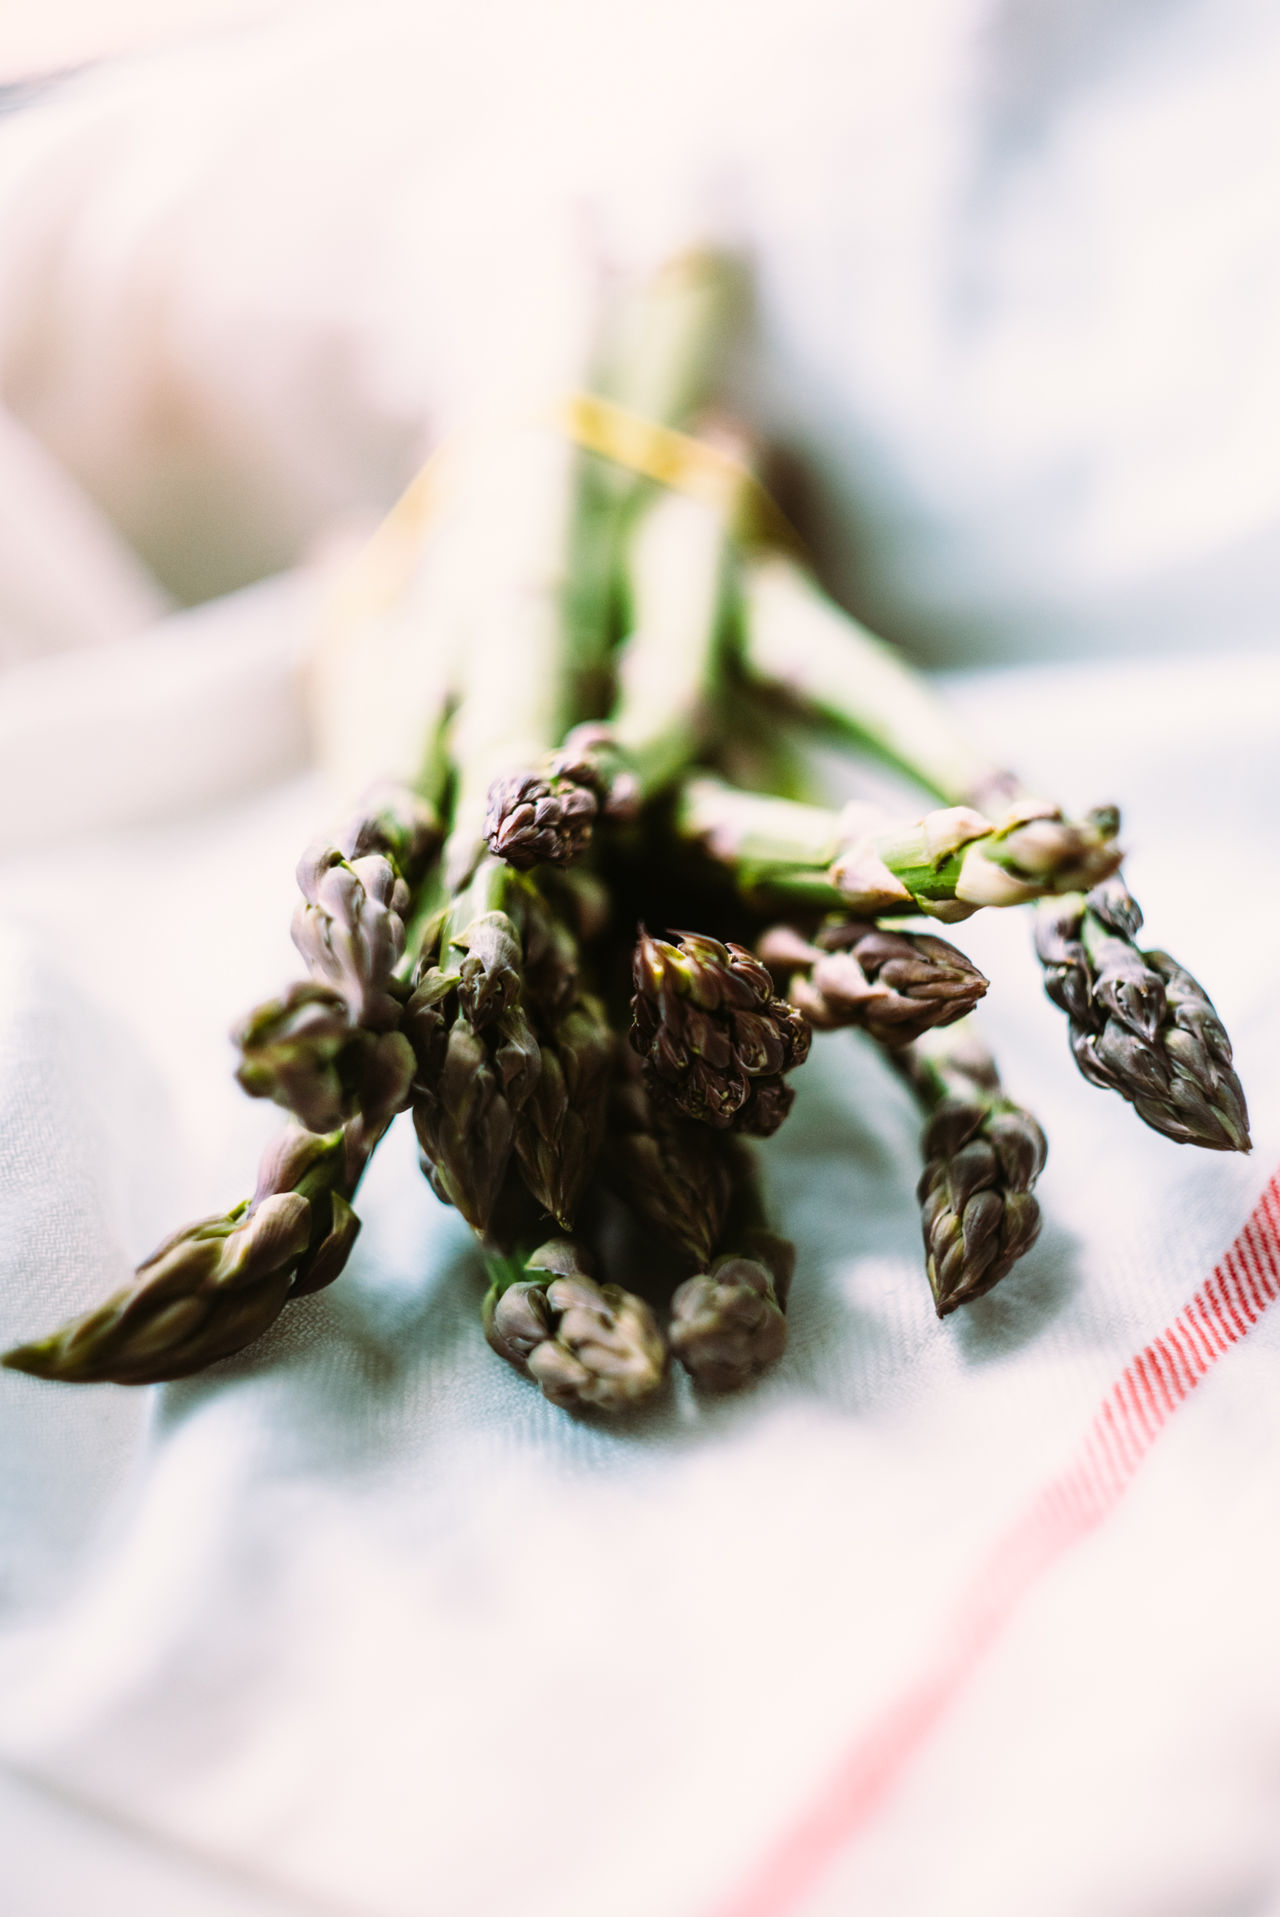 Asparagus Asparagus Season Close-up Day Dried Plant Food Freshness Healthy Eating Herb Herbal Medicine Nature No People Vitamin